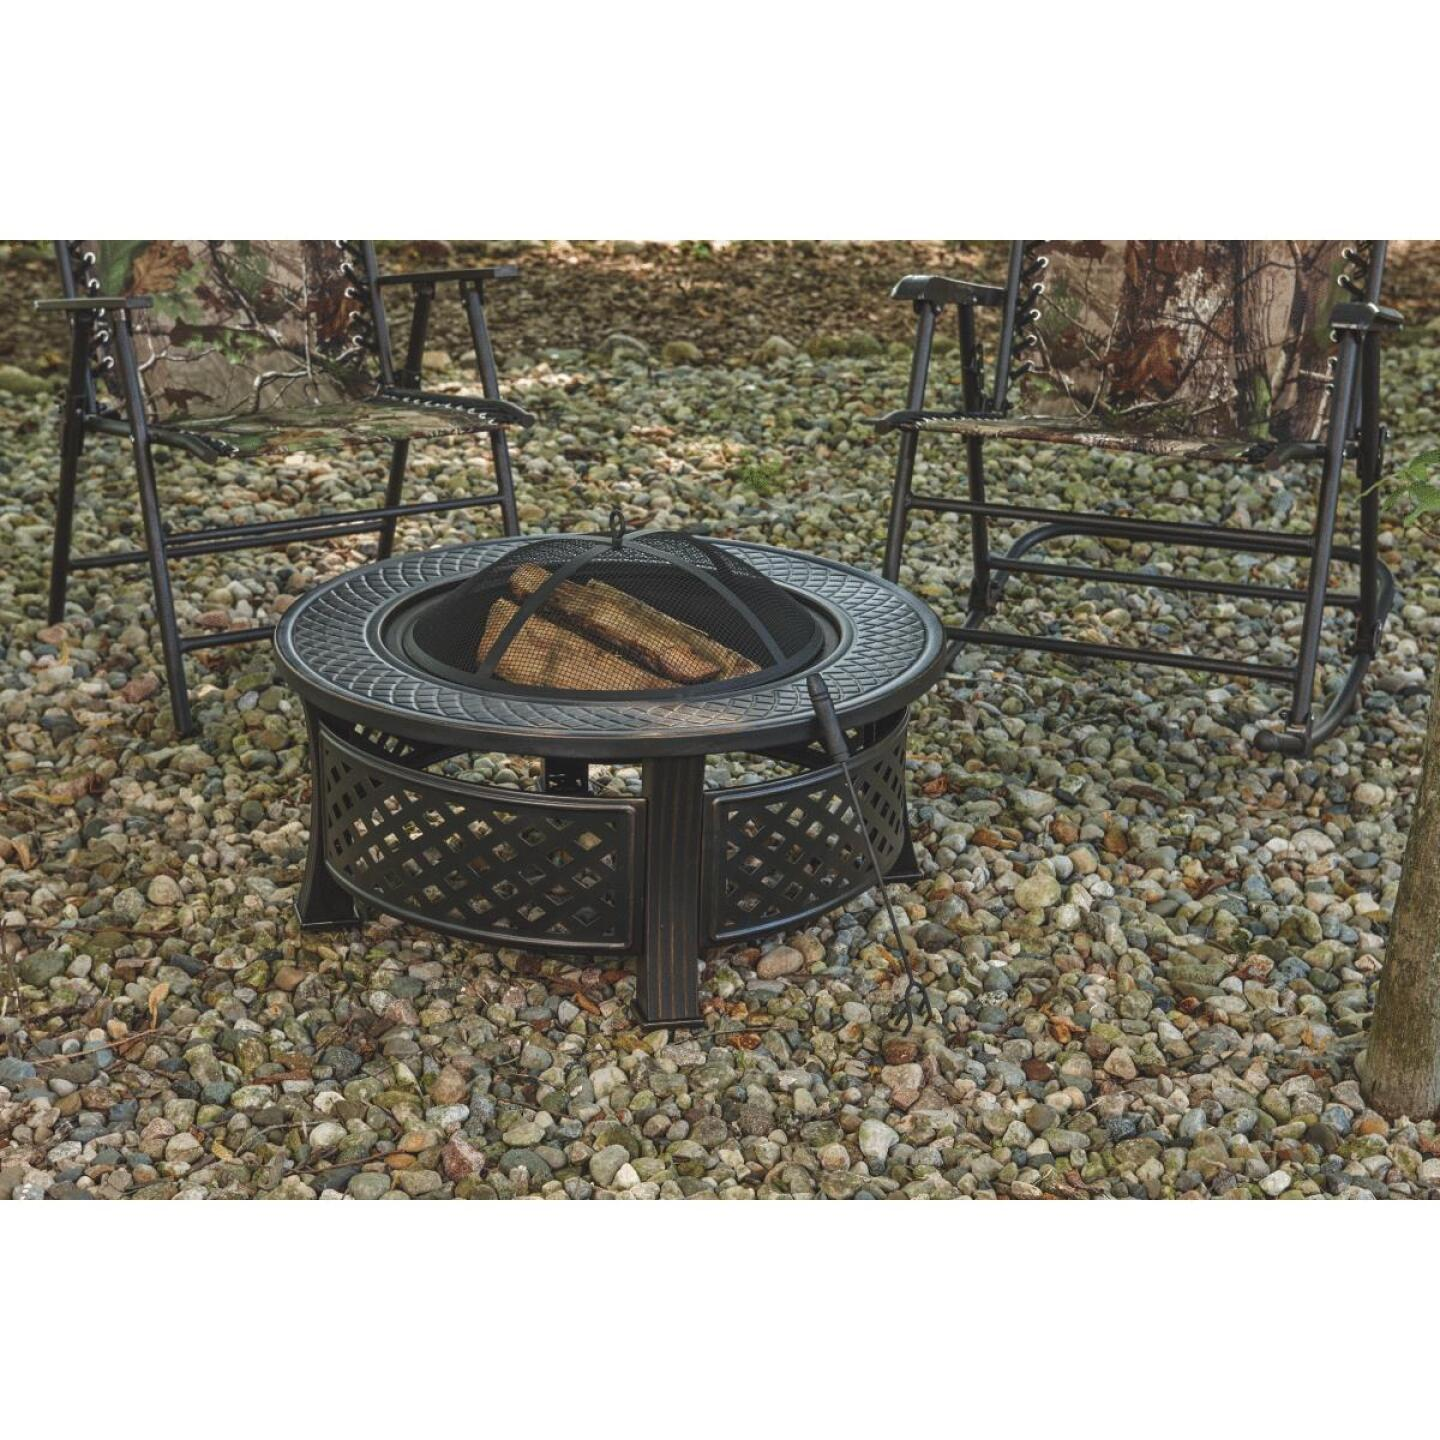 Outdoor Expressions 32 In. Antique Bronze Round Fire Pit Image 2